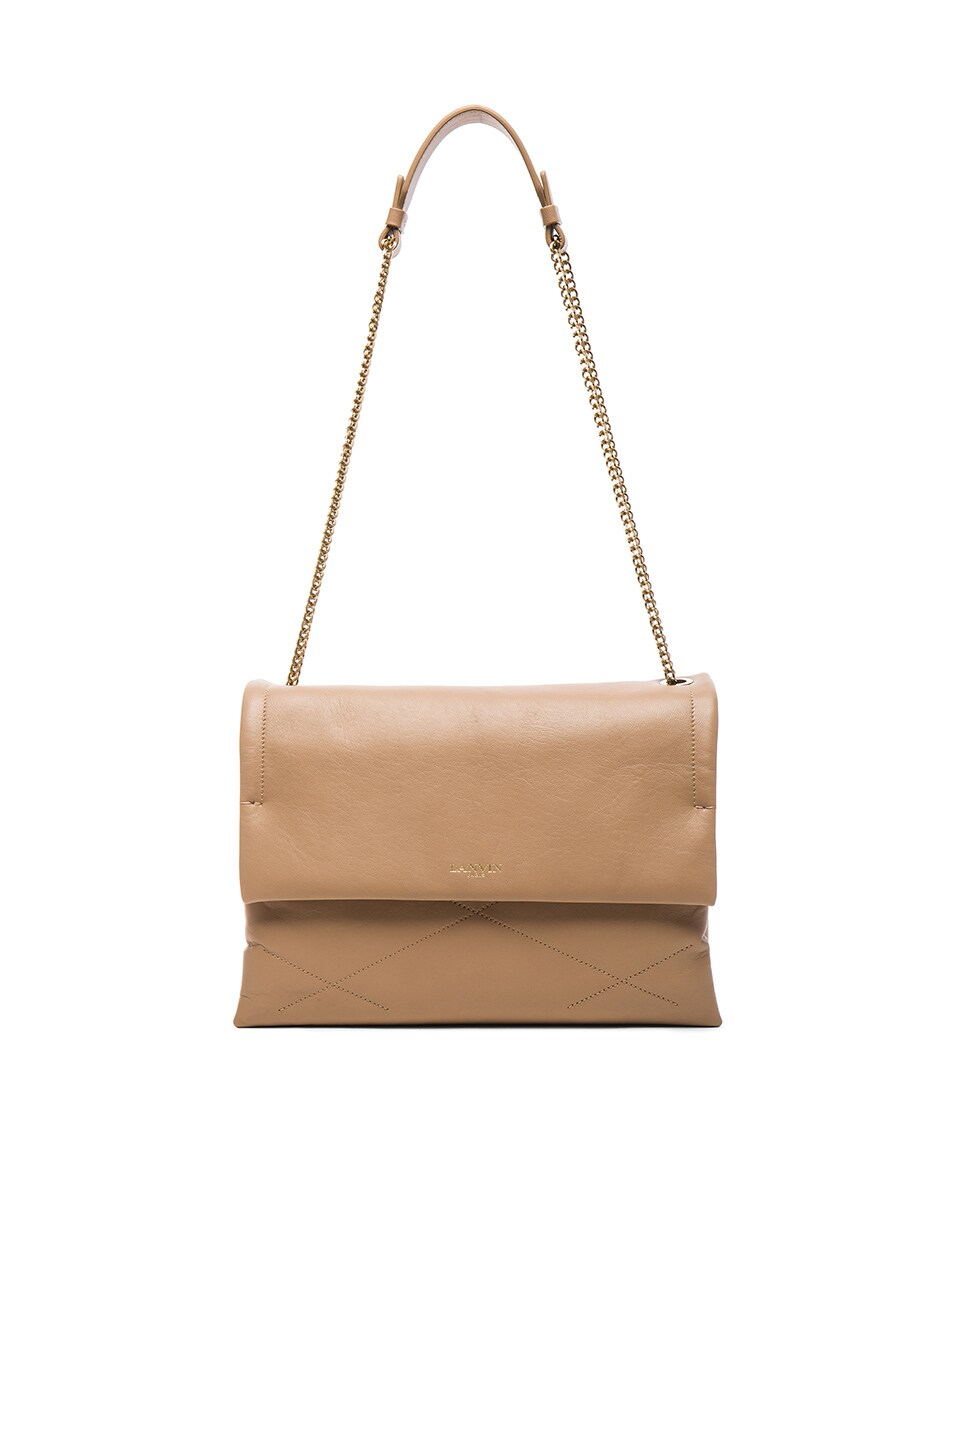 Image 1 of Lanvin Medium Sugar Bag in Sand